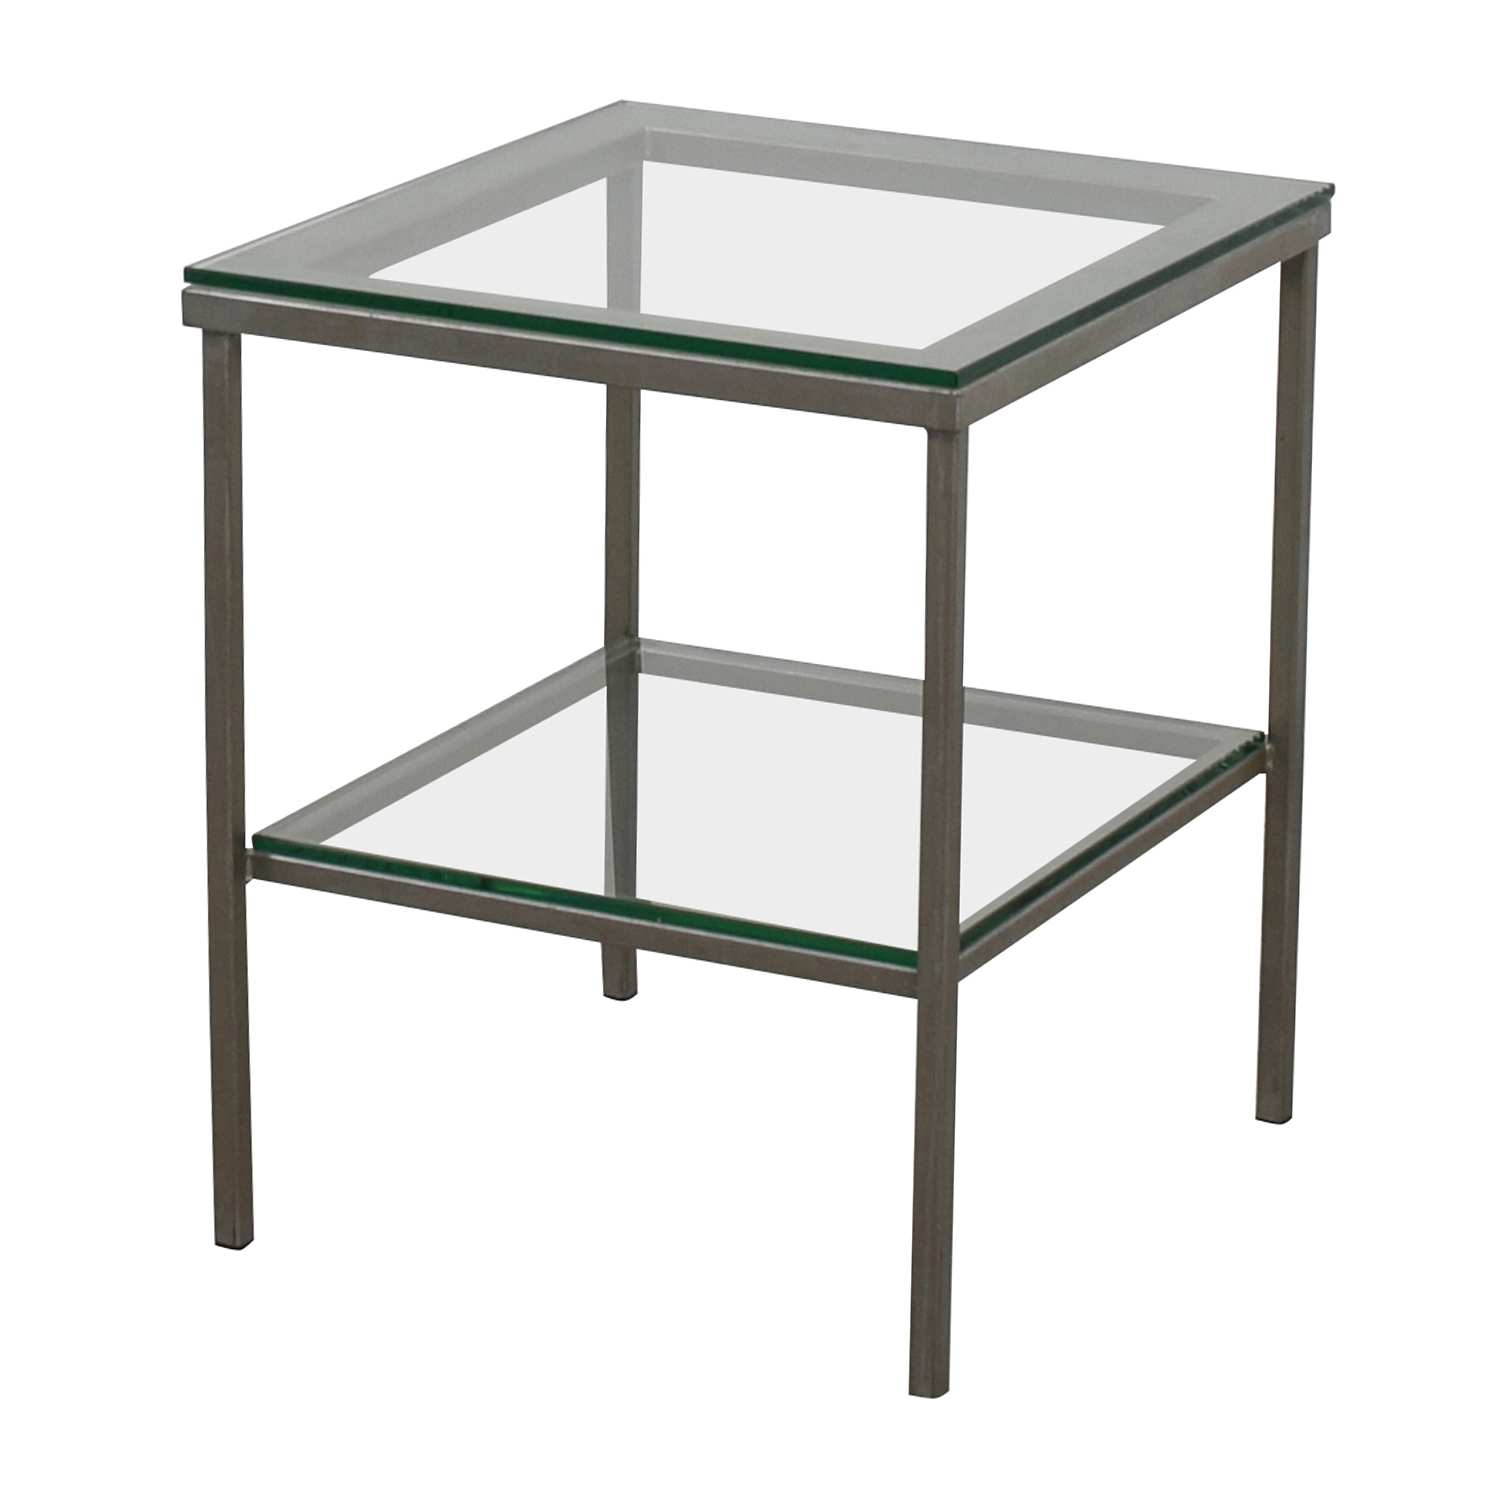 Crate And Barrel Tables: Crate & Barrel Crate & Barrel Glass Chrome Side